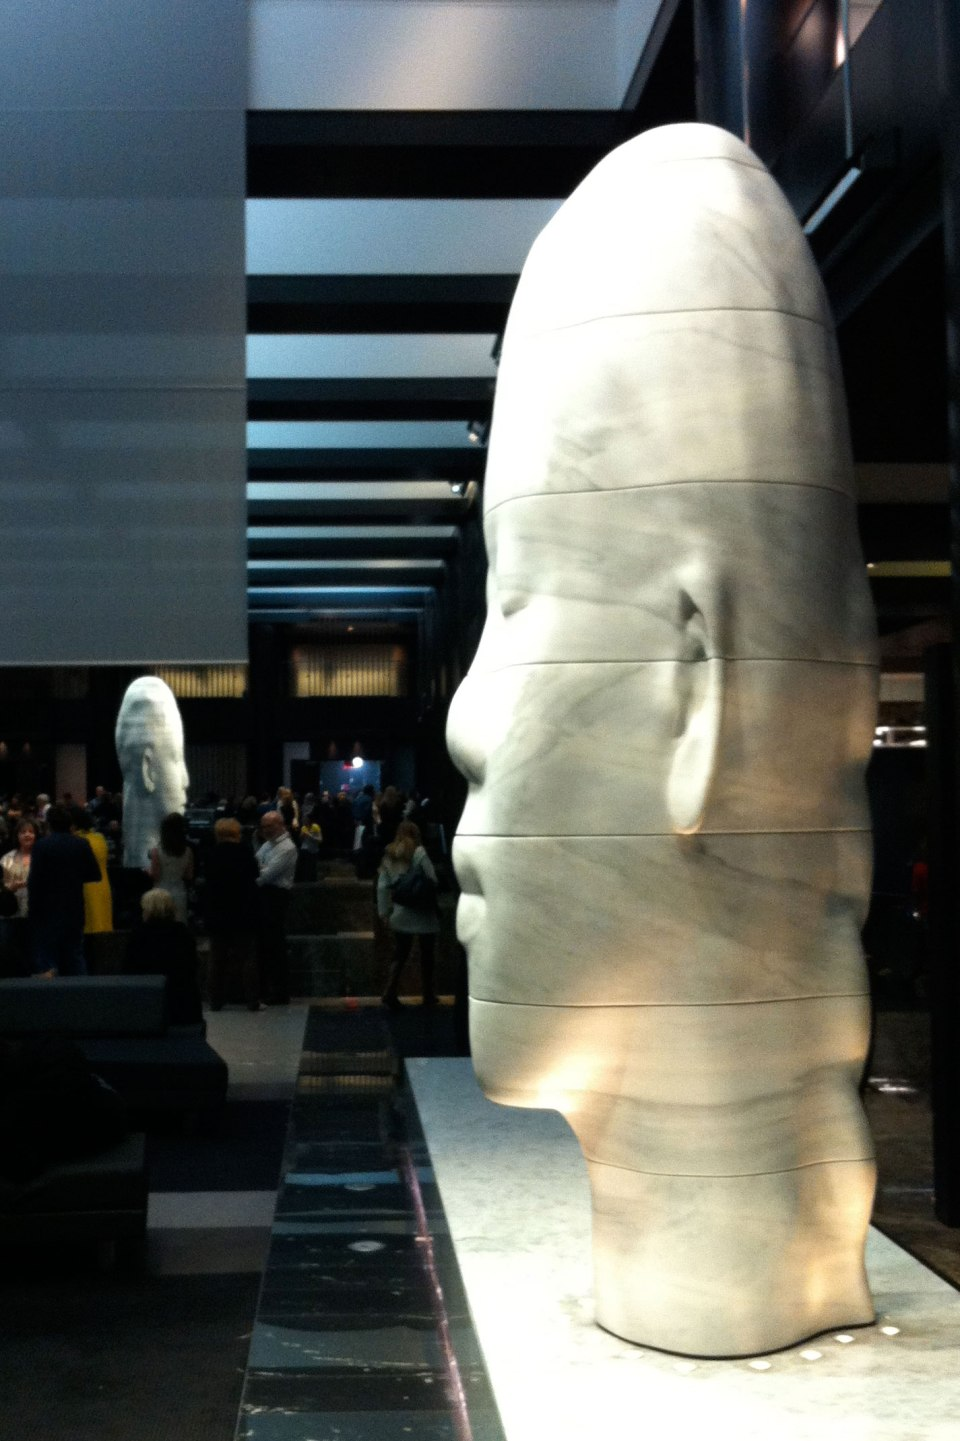 Jaume Plensa sculptures in the Grand Hyatt lobby.